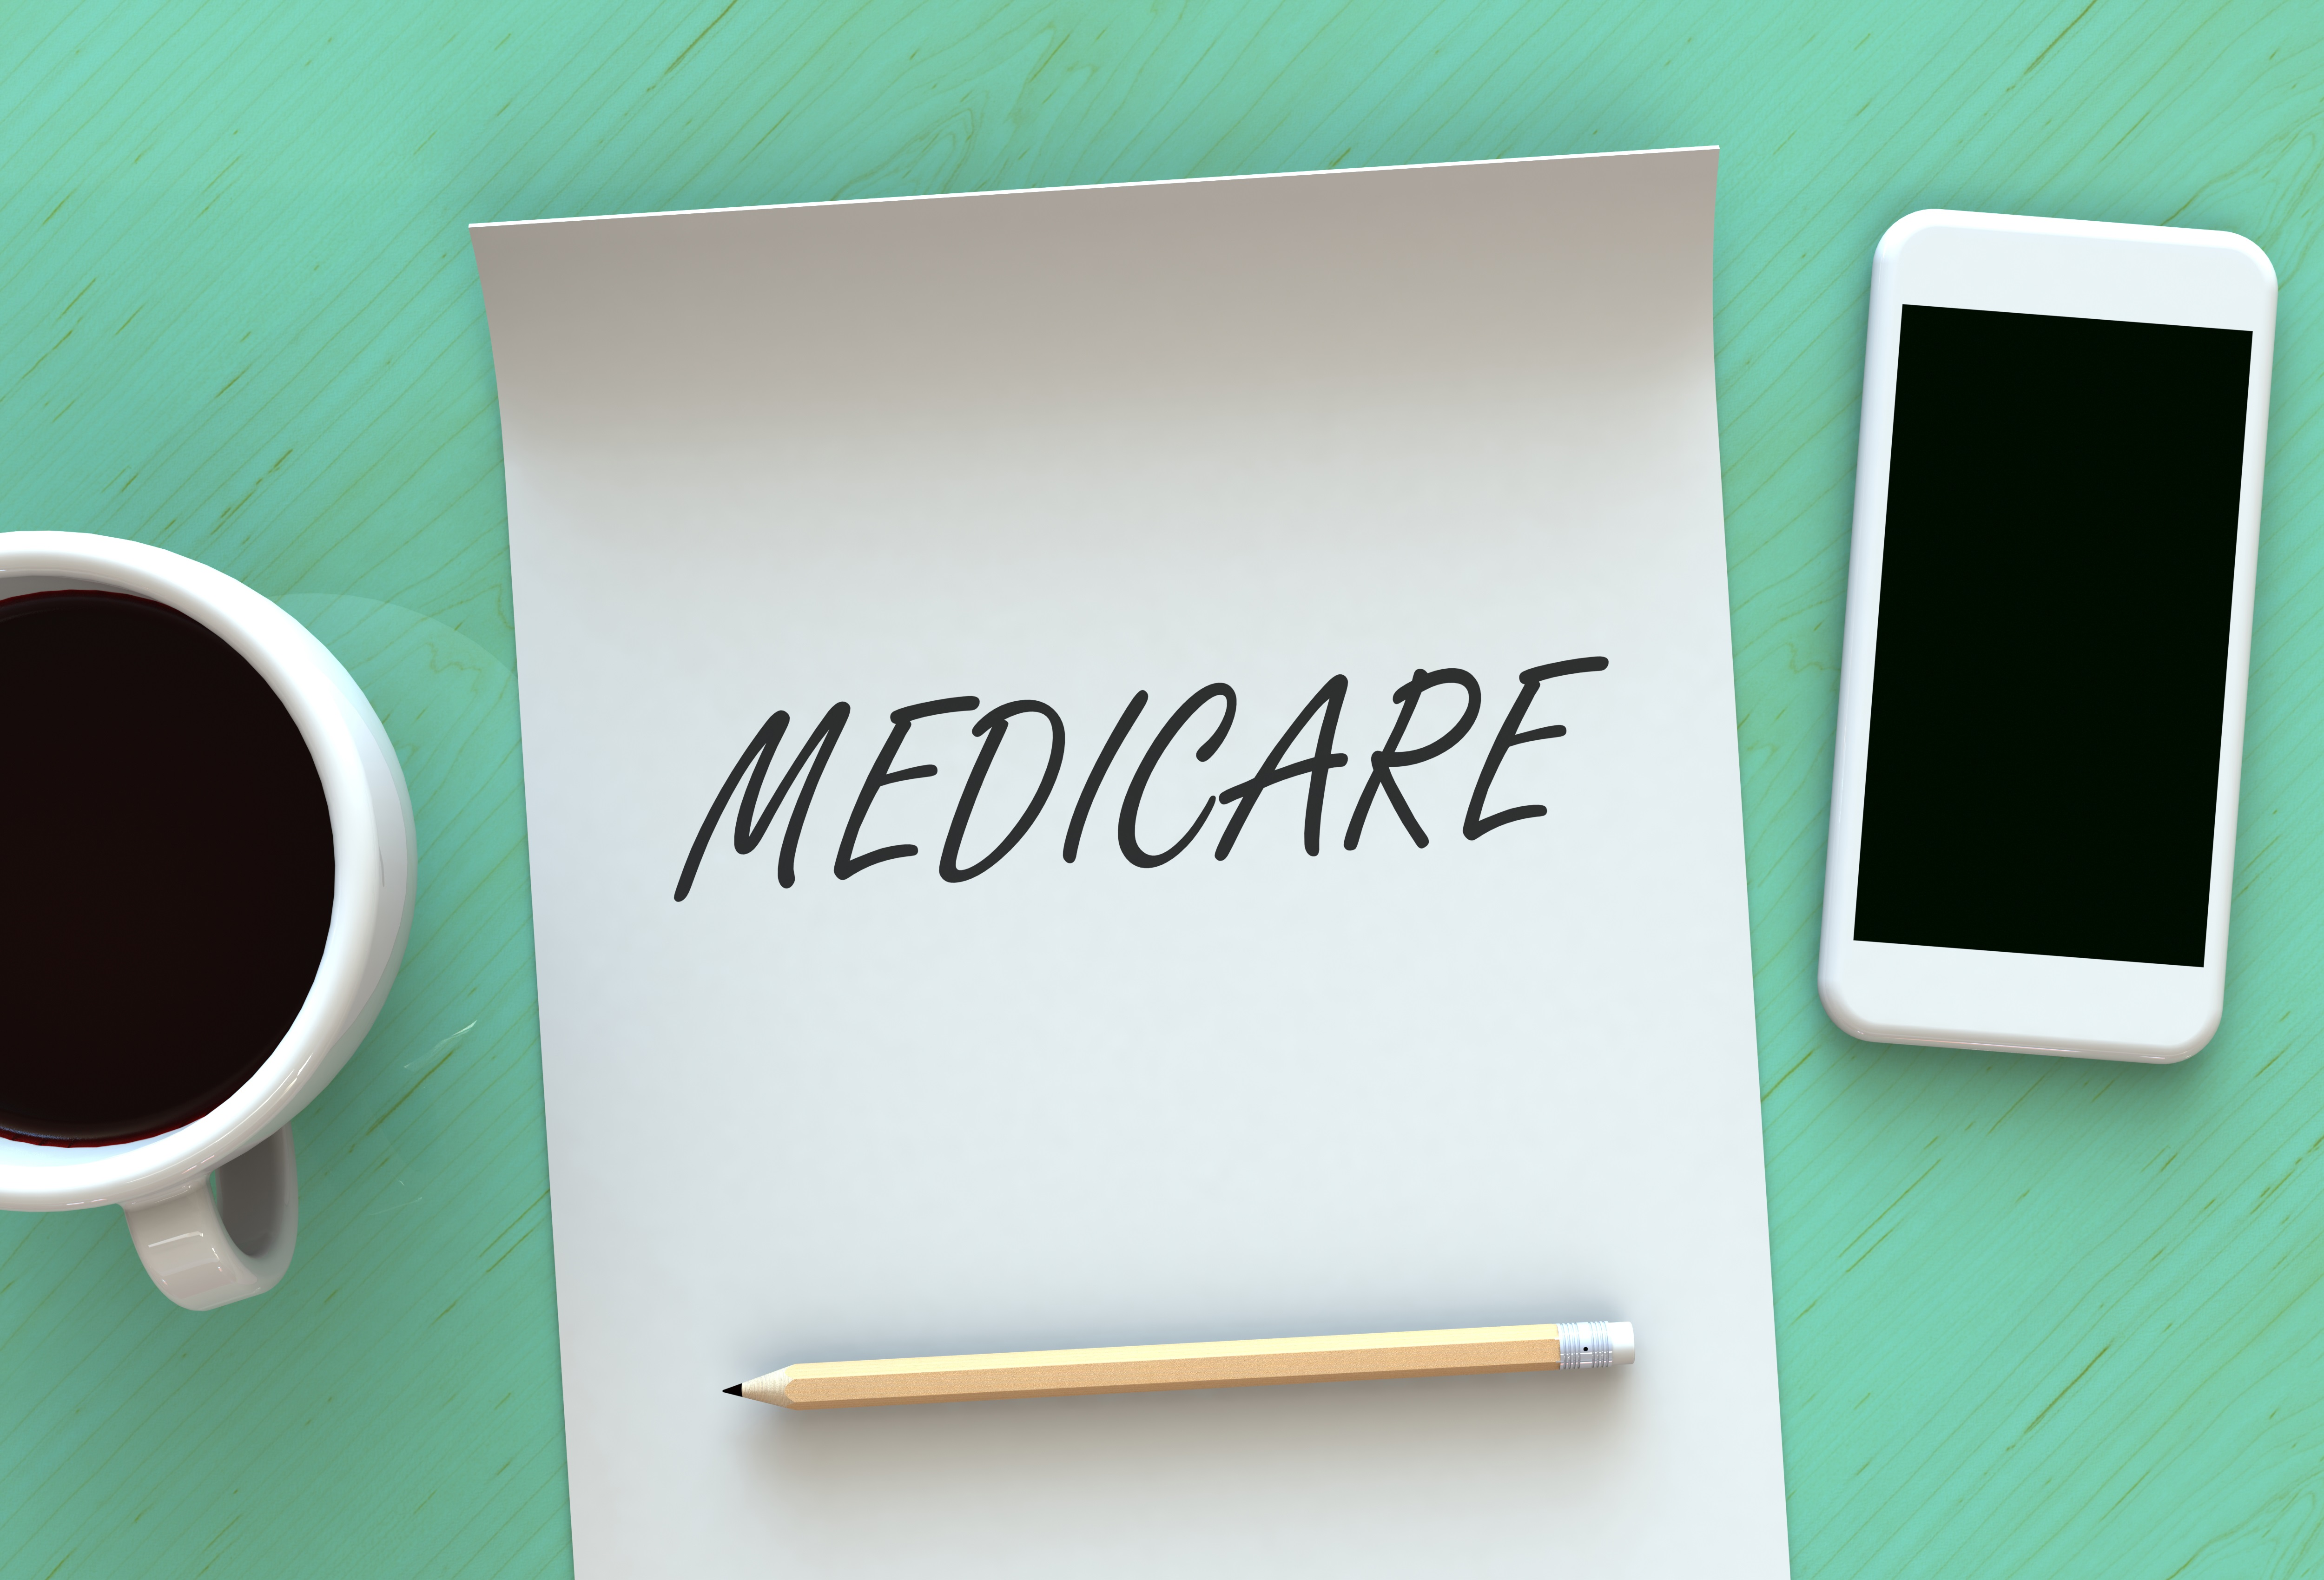 MEDICARE, message on paper, smart phone and coffee on table, 3D rendering